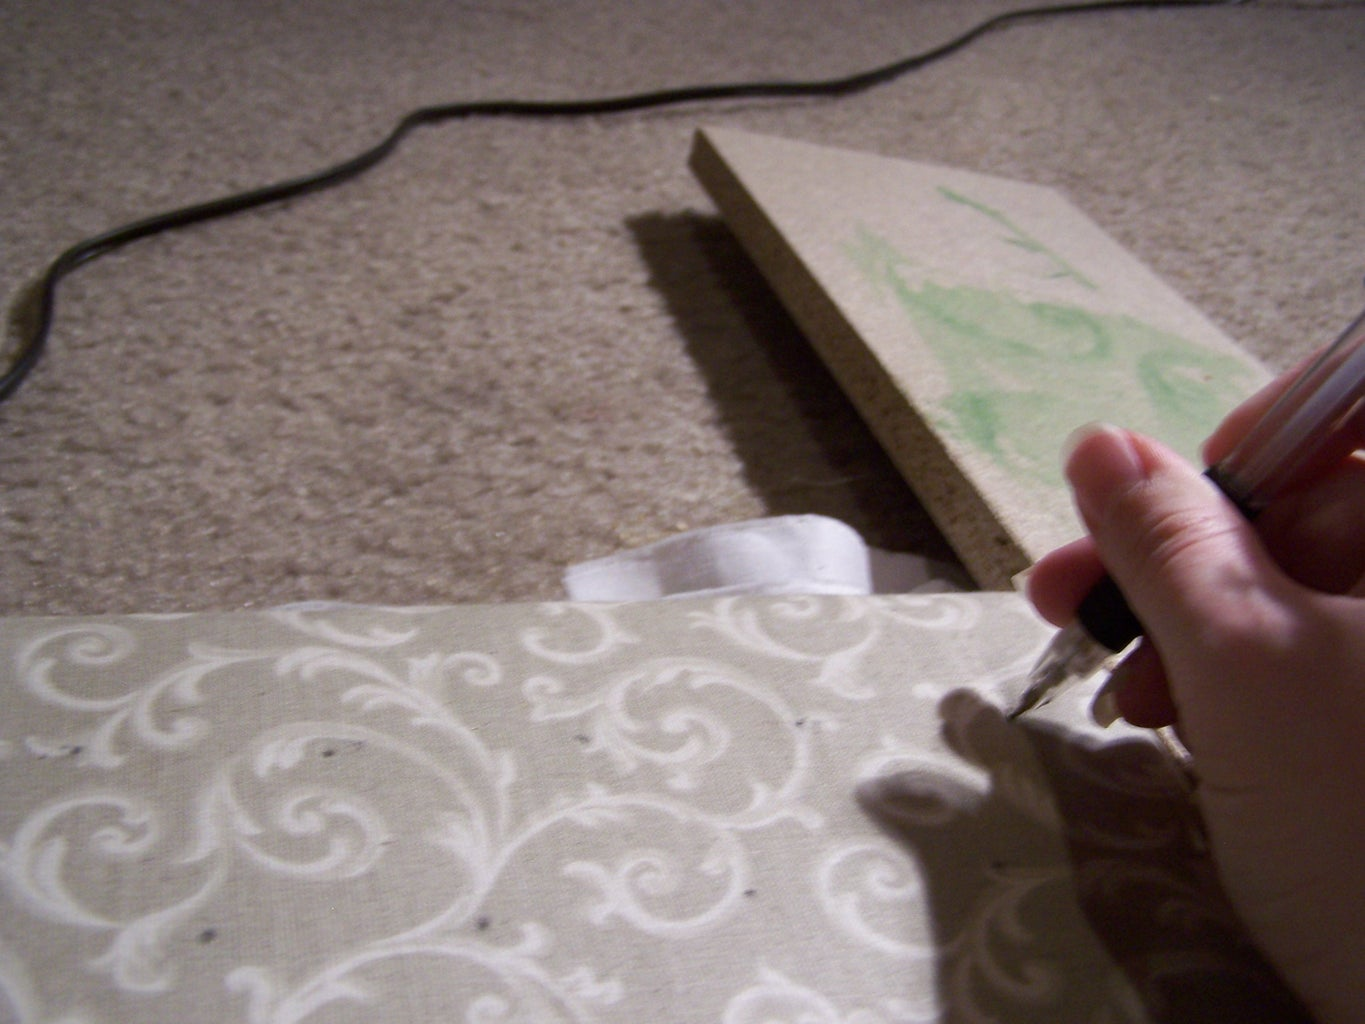 Upholstering and Marking Your Fabric